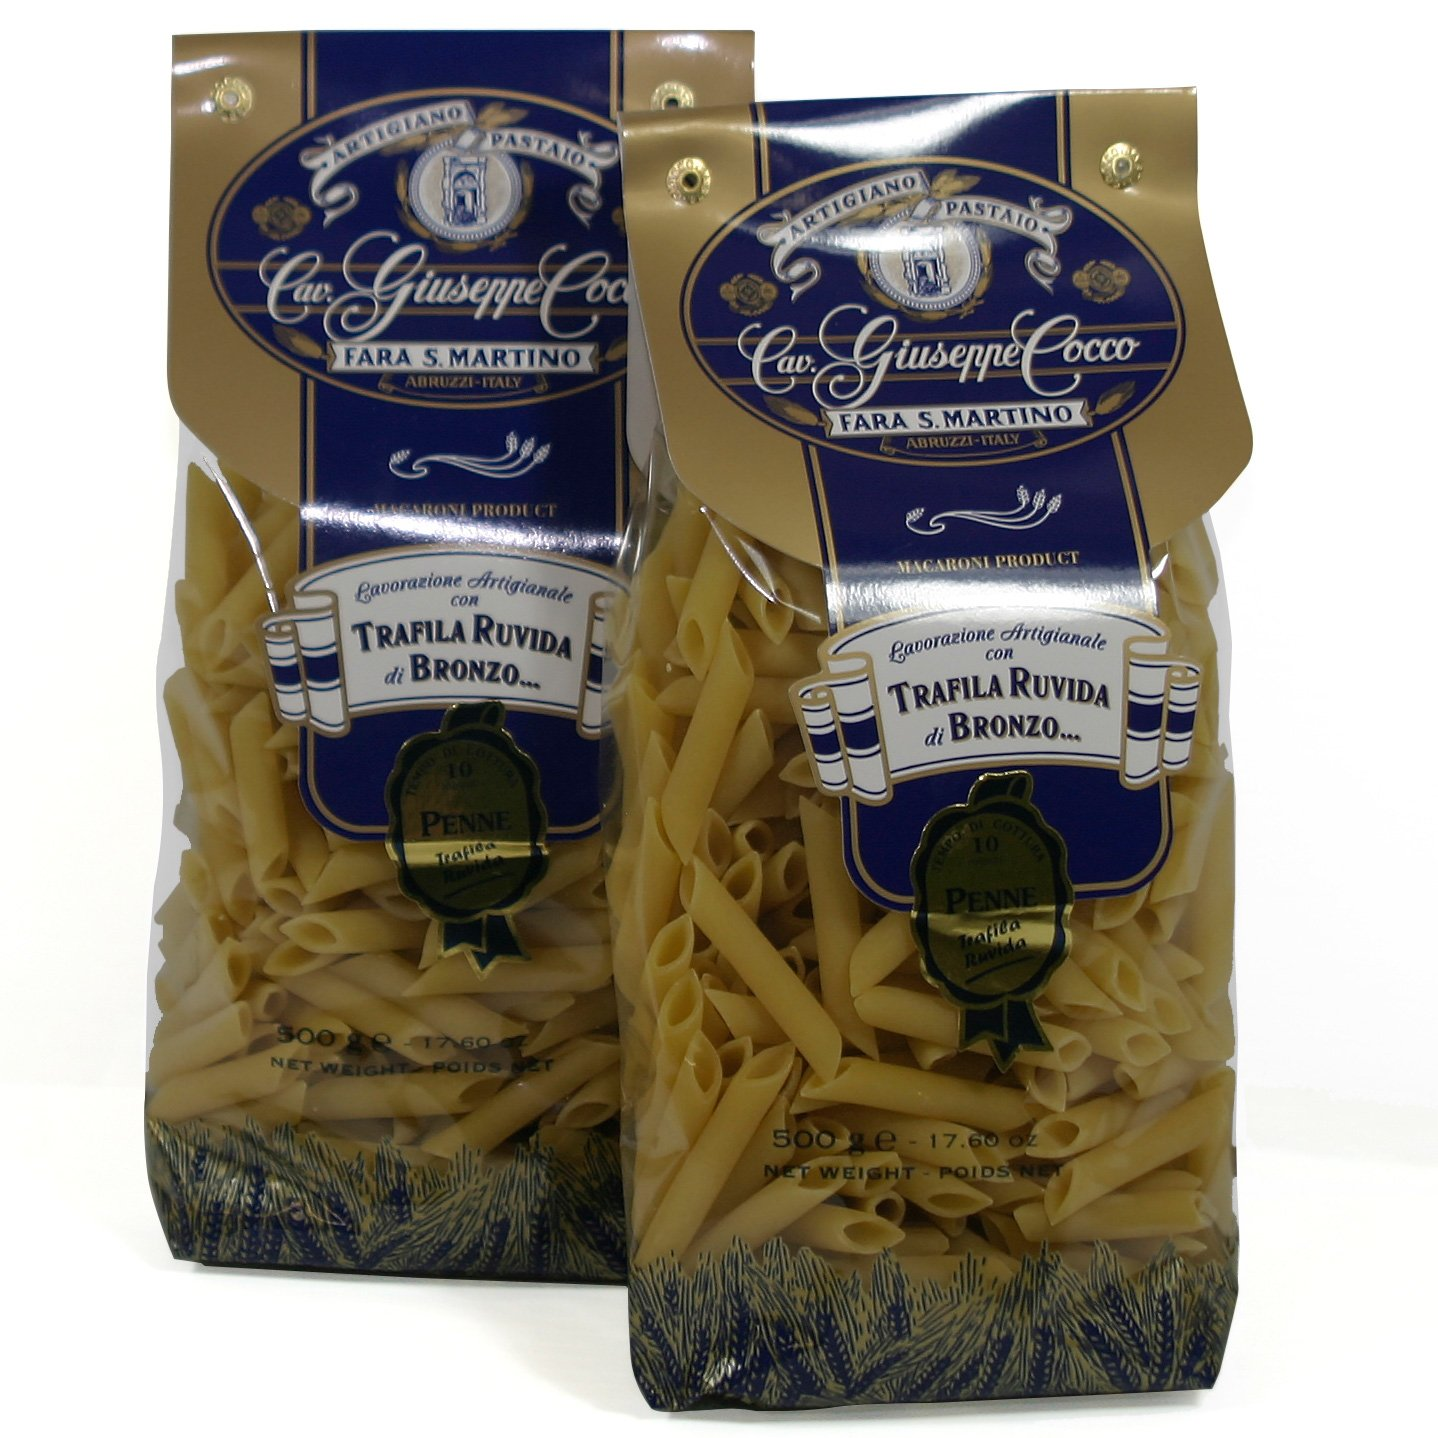 Cav. Inexpensive Giuseppe Cocco Penne Sales 2-pack